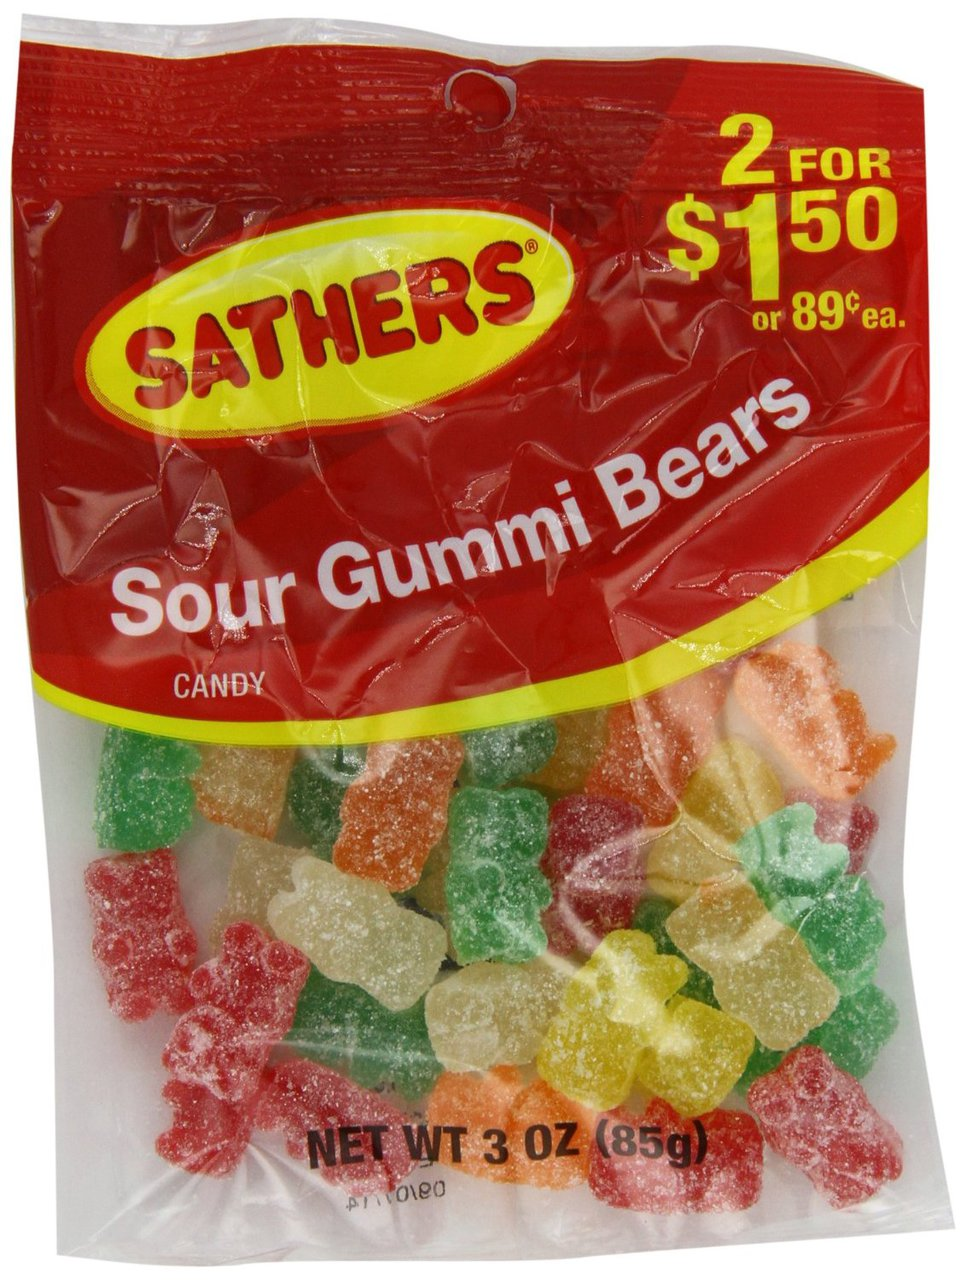 12 PACKS : Farley's & Sathers Candy, Sour Gummy Bears, 3 Ounce by